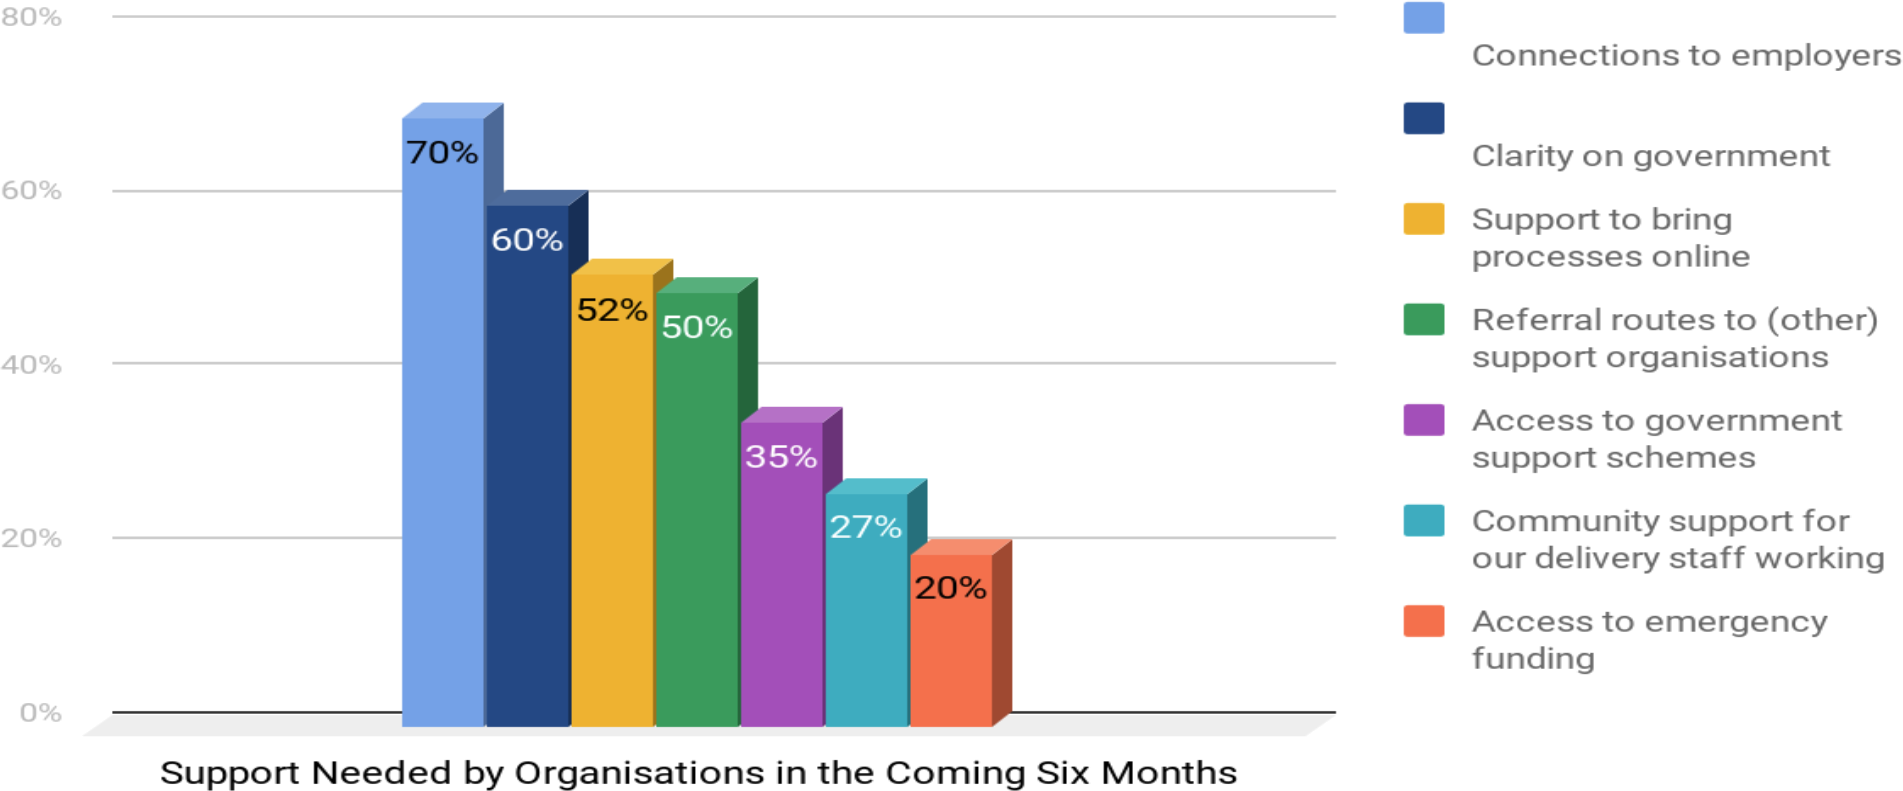 What kind of support do you think your organisation will need over the next 6 months? (diagram)